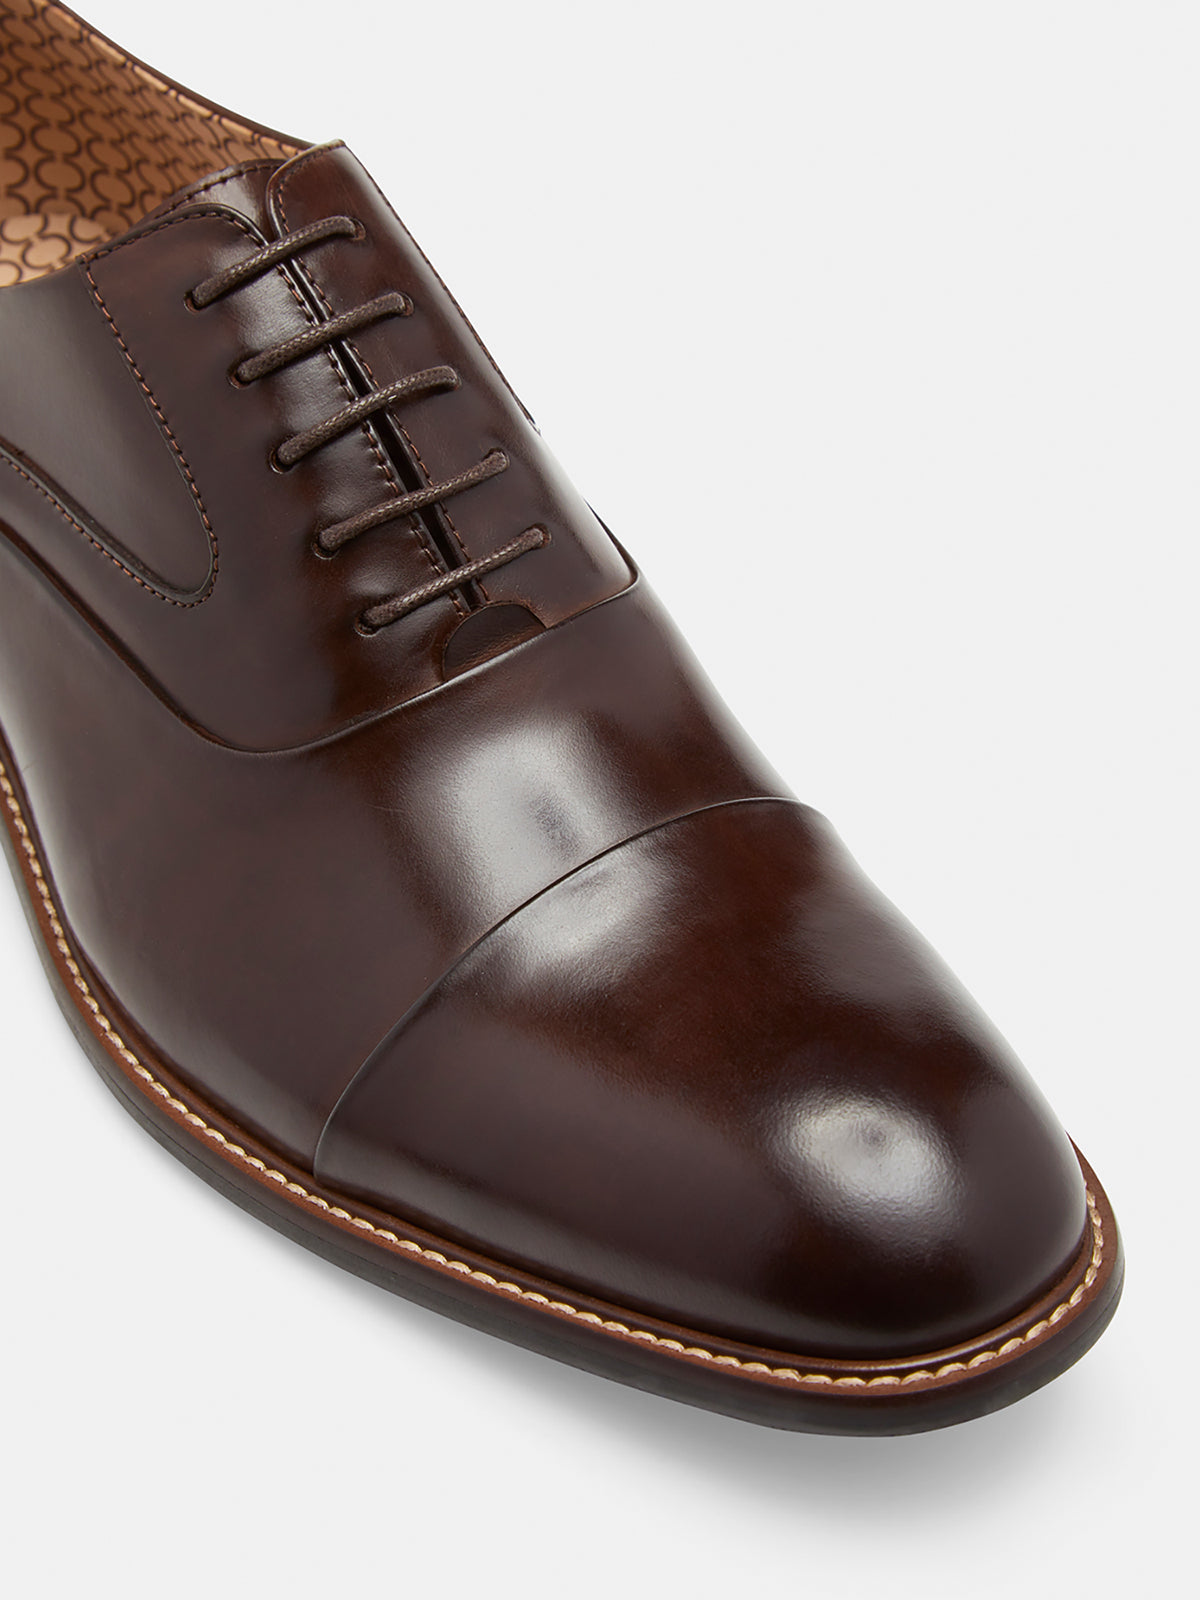 FRANK LEATHER OXFORD SHOES CHOCOLATE